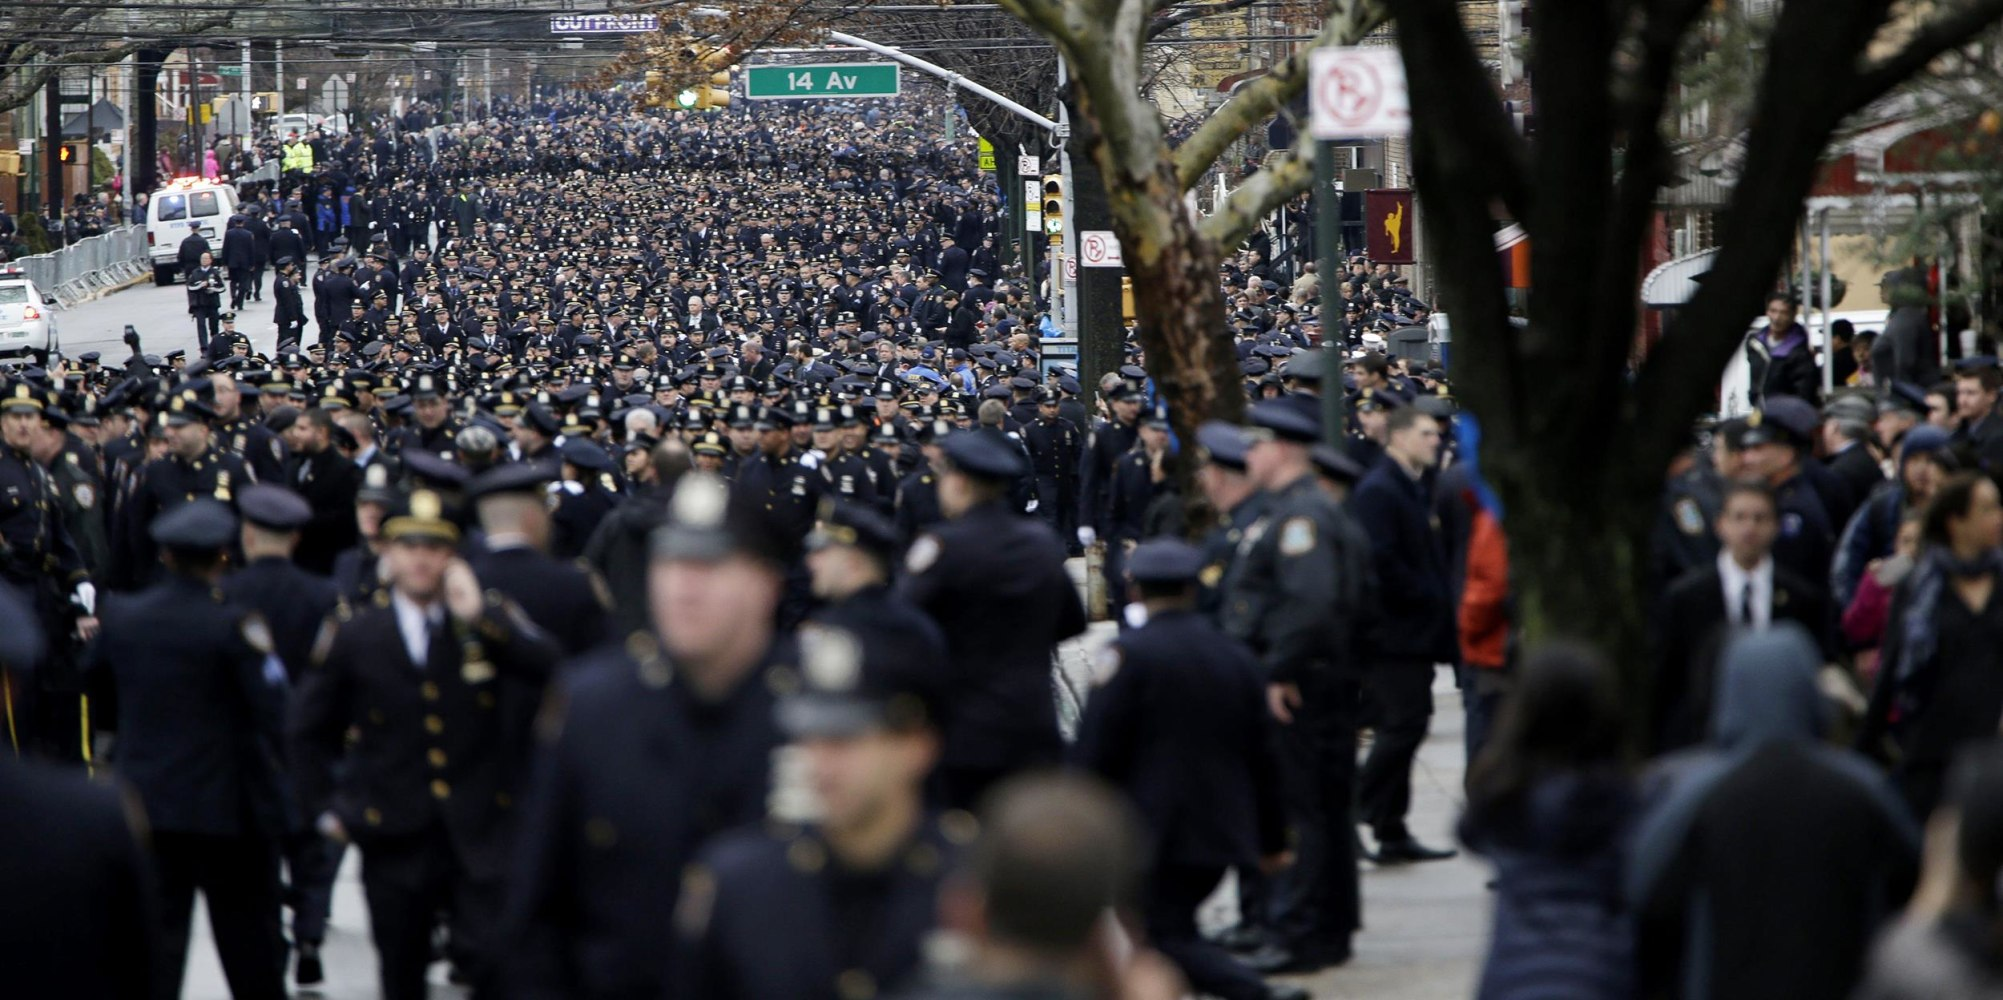 Nypd Officer Dies Today Nypd Funeral Ebdacfdfcffd Nbcnews Ux